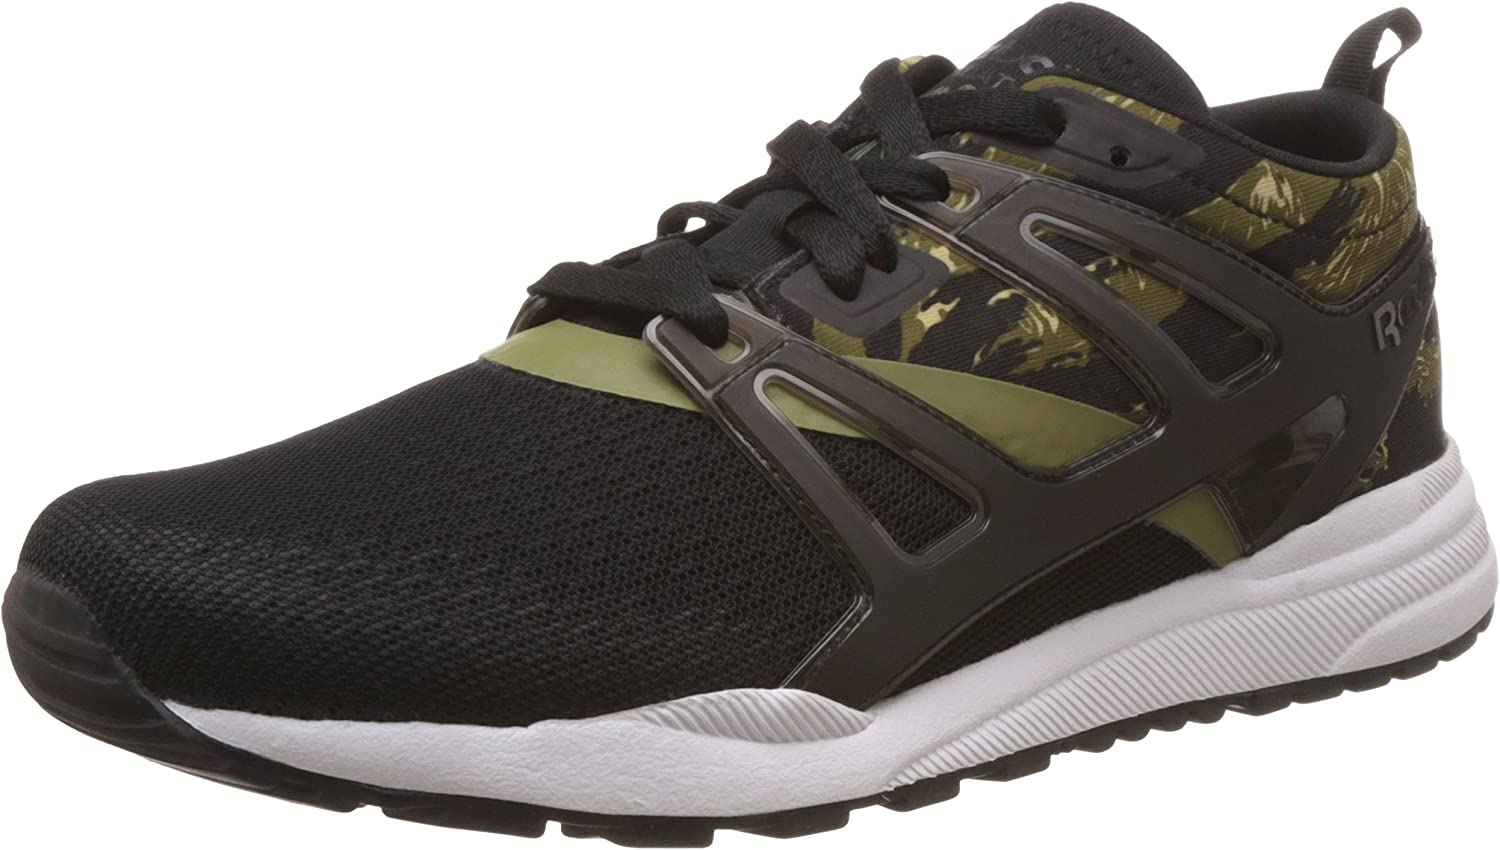 Reebok Classic Ventilator Adapt Graphic Mens Trainers shoes